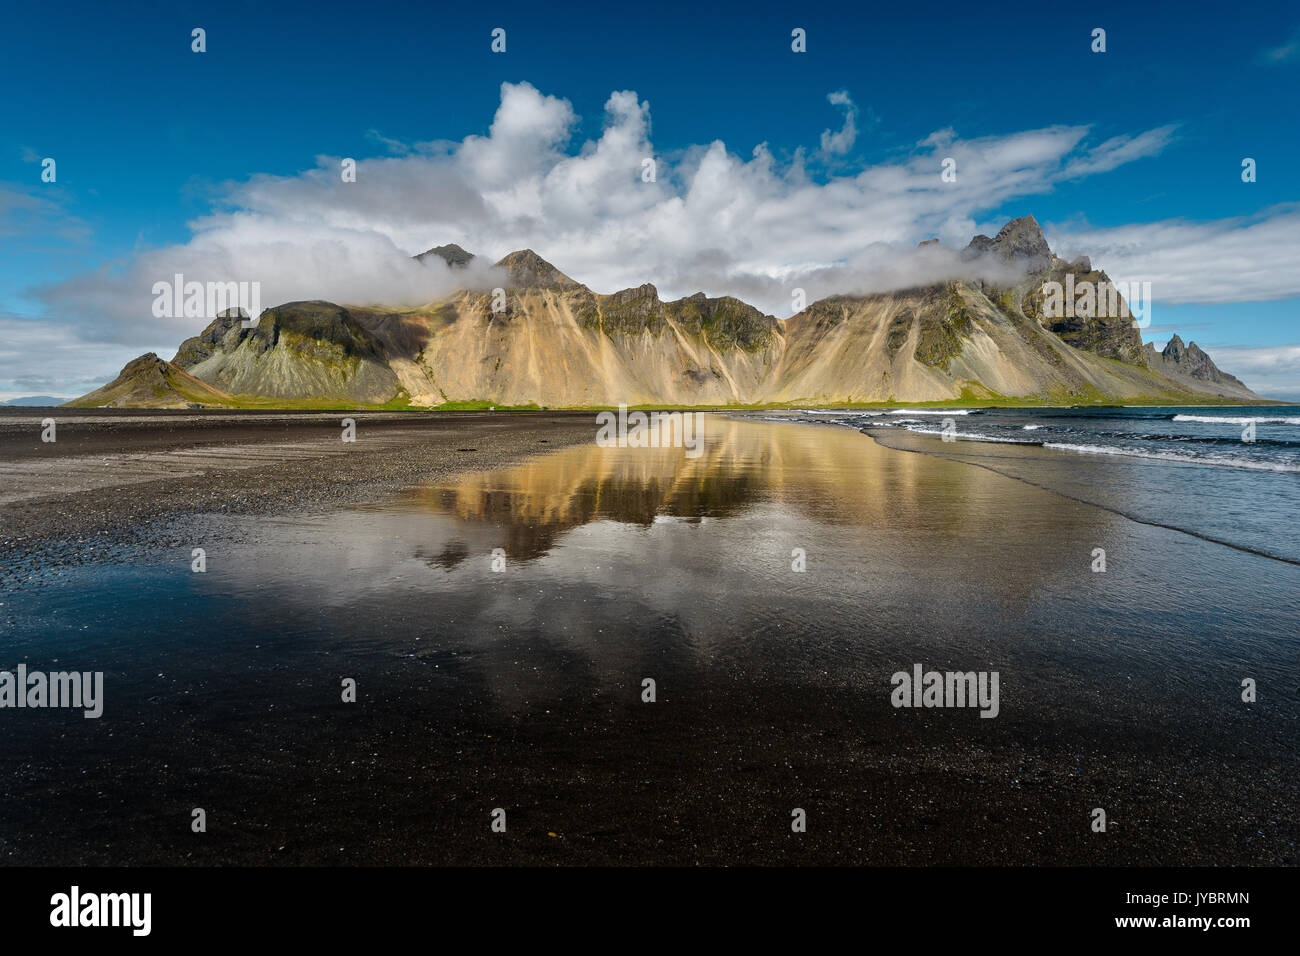 Vestrahorn reflections in the wet beach. Stock Photo